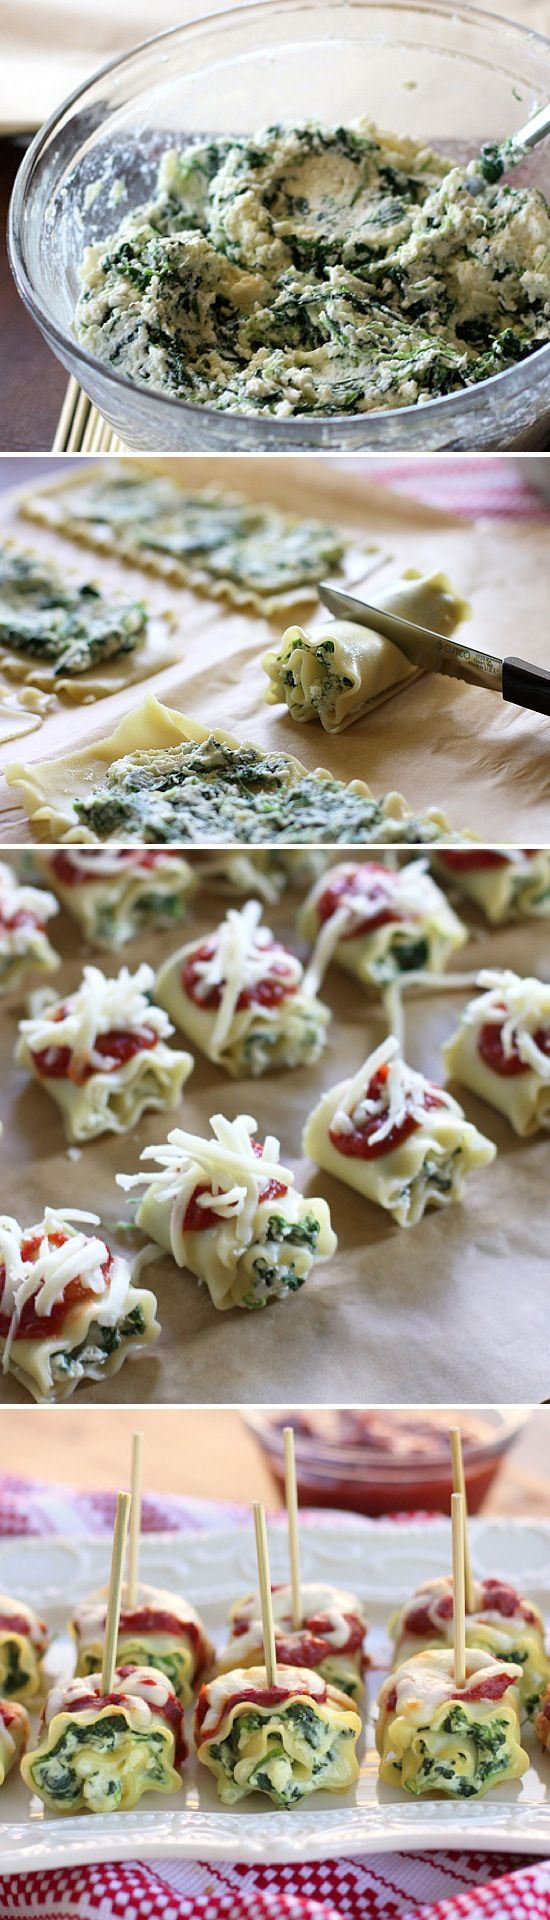 Mini Spinach Lasagna Roll-Ups -8 lasagna noodles, cooked  -1 (10 ounce) package frozen chopped spinach, thawed and well drained  -1 (15 ounce) container ricotta  -1/2 cup Parmesan cheese  -1 egg  -1/2 teaspoon minced garlic  -1/2 teaspoon Italian seasonings  -salt and pepper,  -1 (15 ounce) can pizza sauce  -1 cup shredded mozzarella cheese.  Bake 350 for 18-20 min